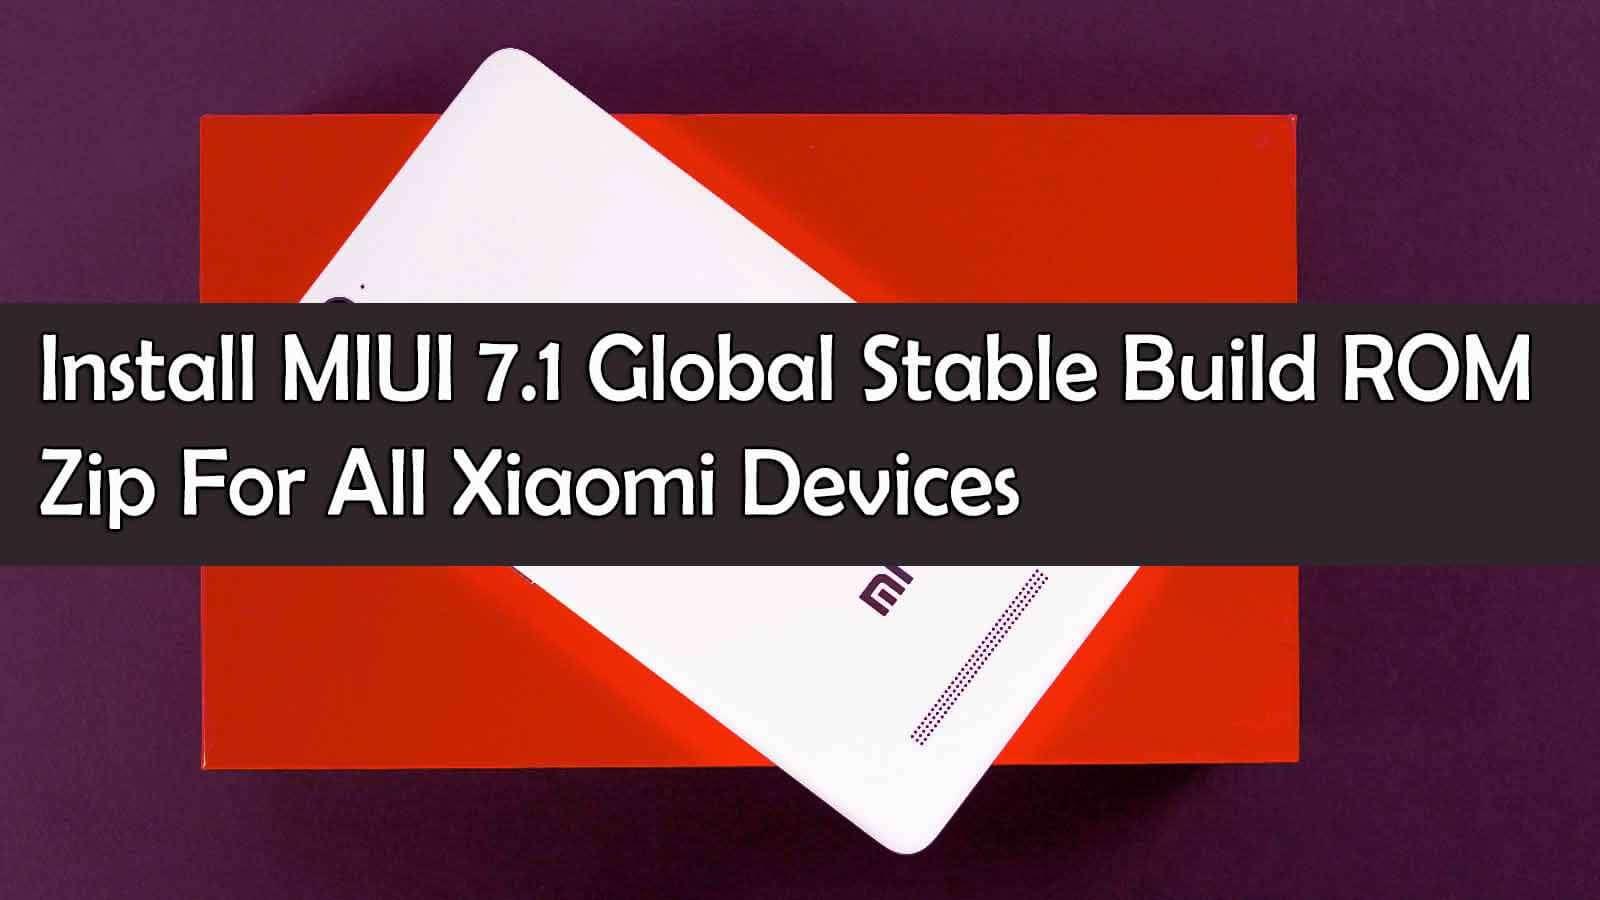 Download] MIUI 7 1 Global Stable Zip For All Xiaomi Devices